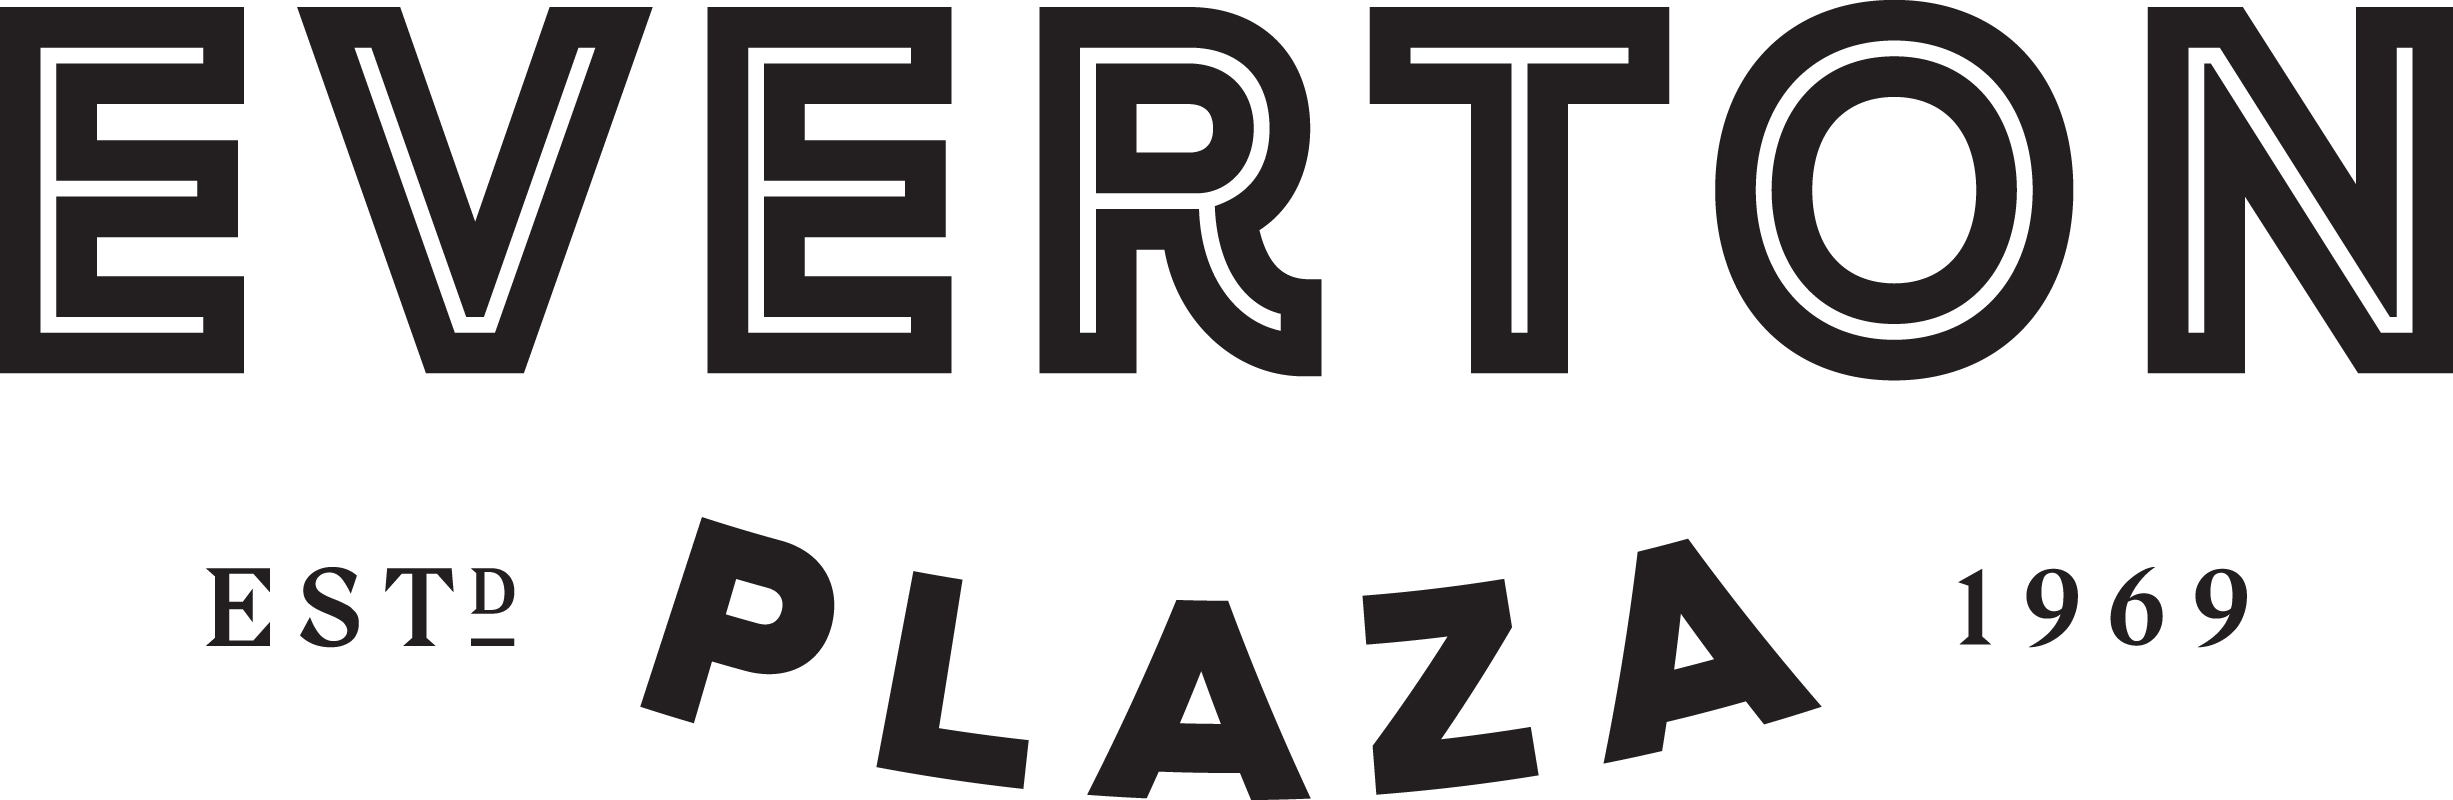 Everton_Plaza_Logo.png